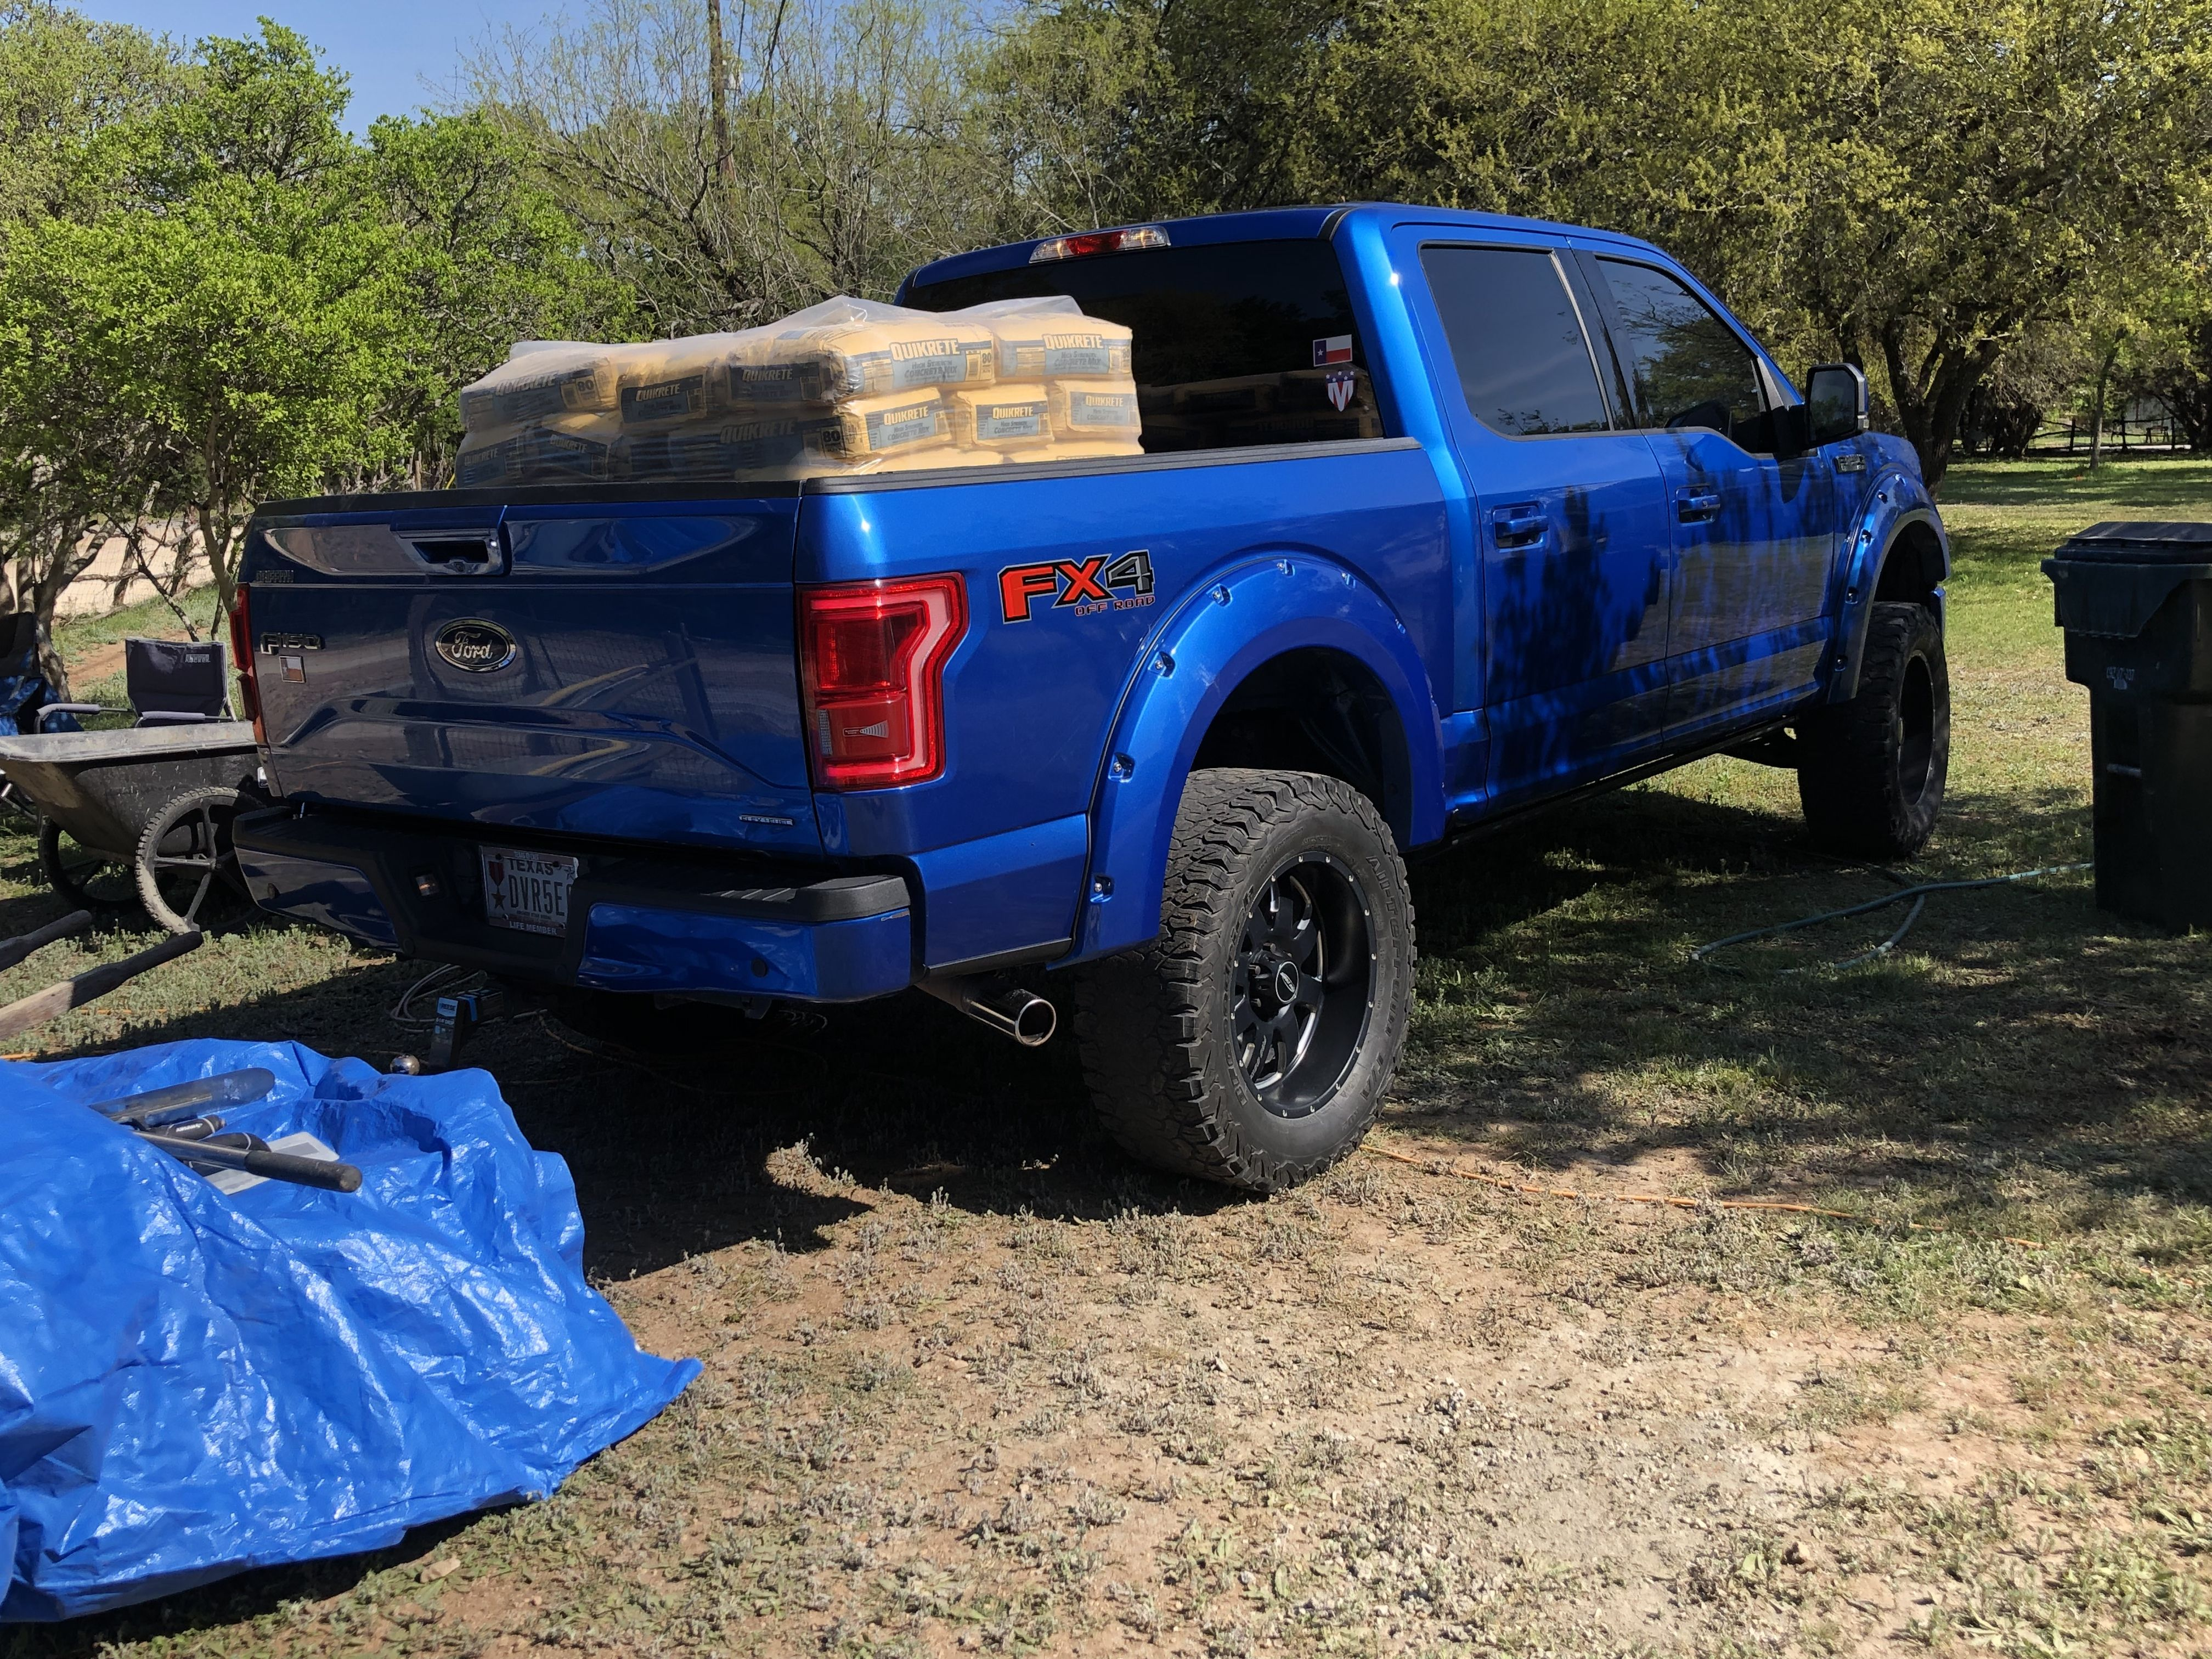 42 X 80 Bags Of Quikrete Not Bad 2015 Ford F150 Ford F150 Monster Trucks